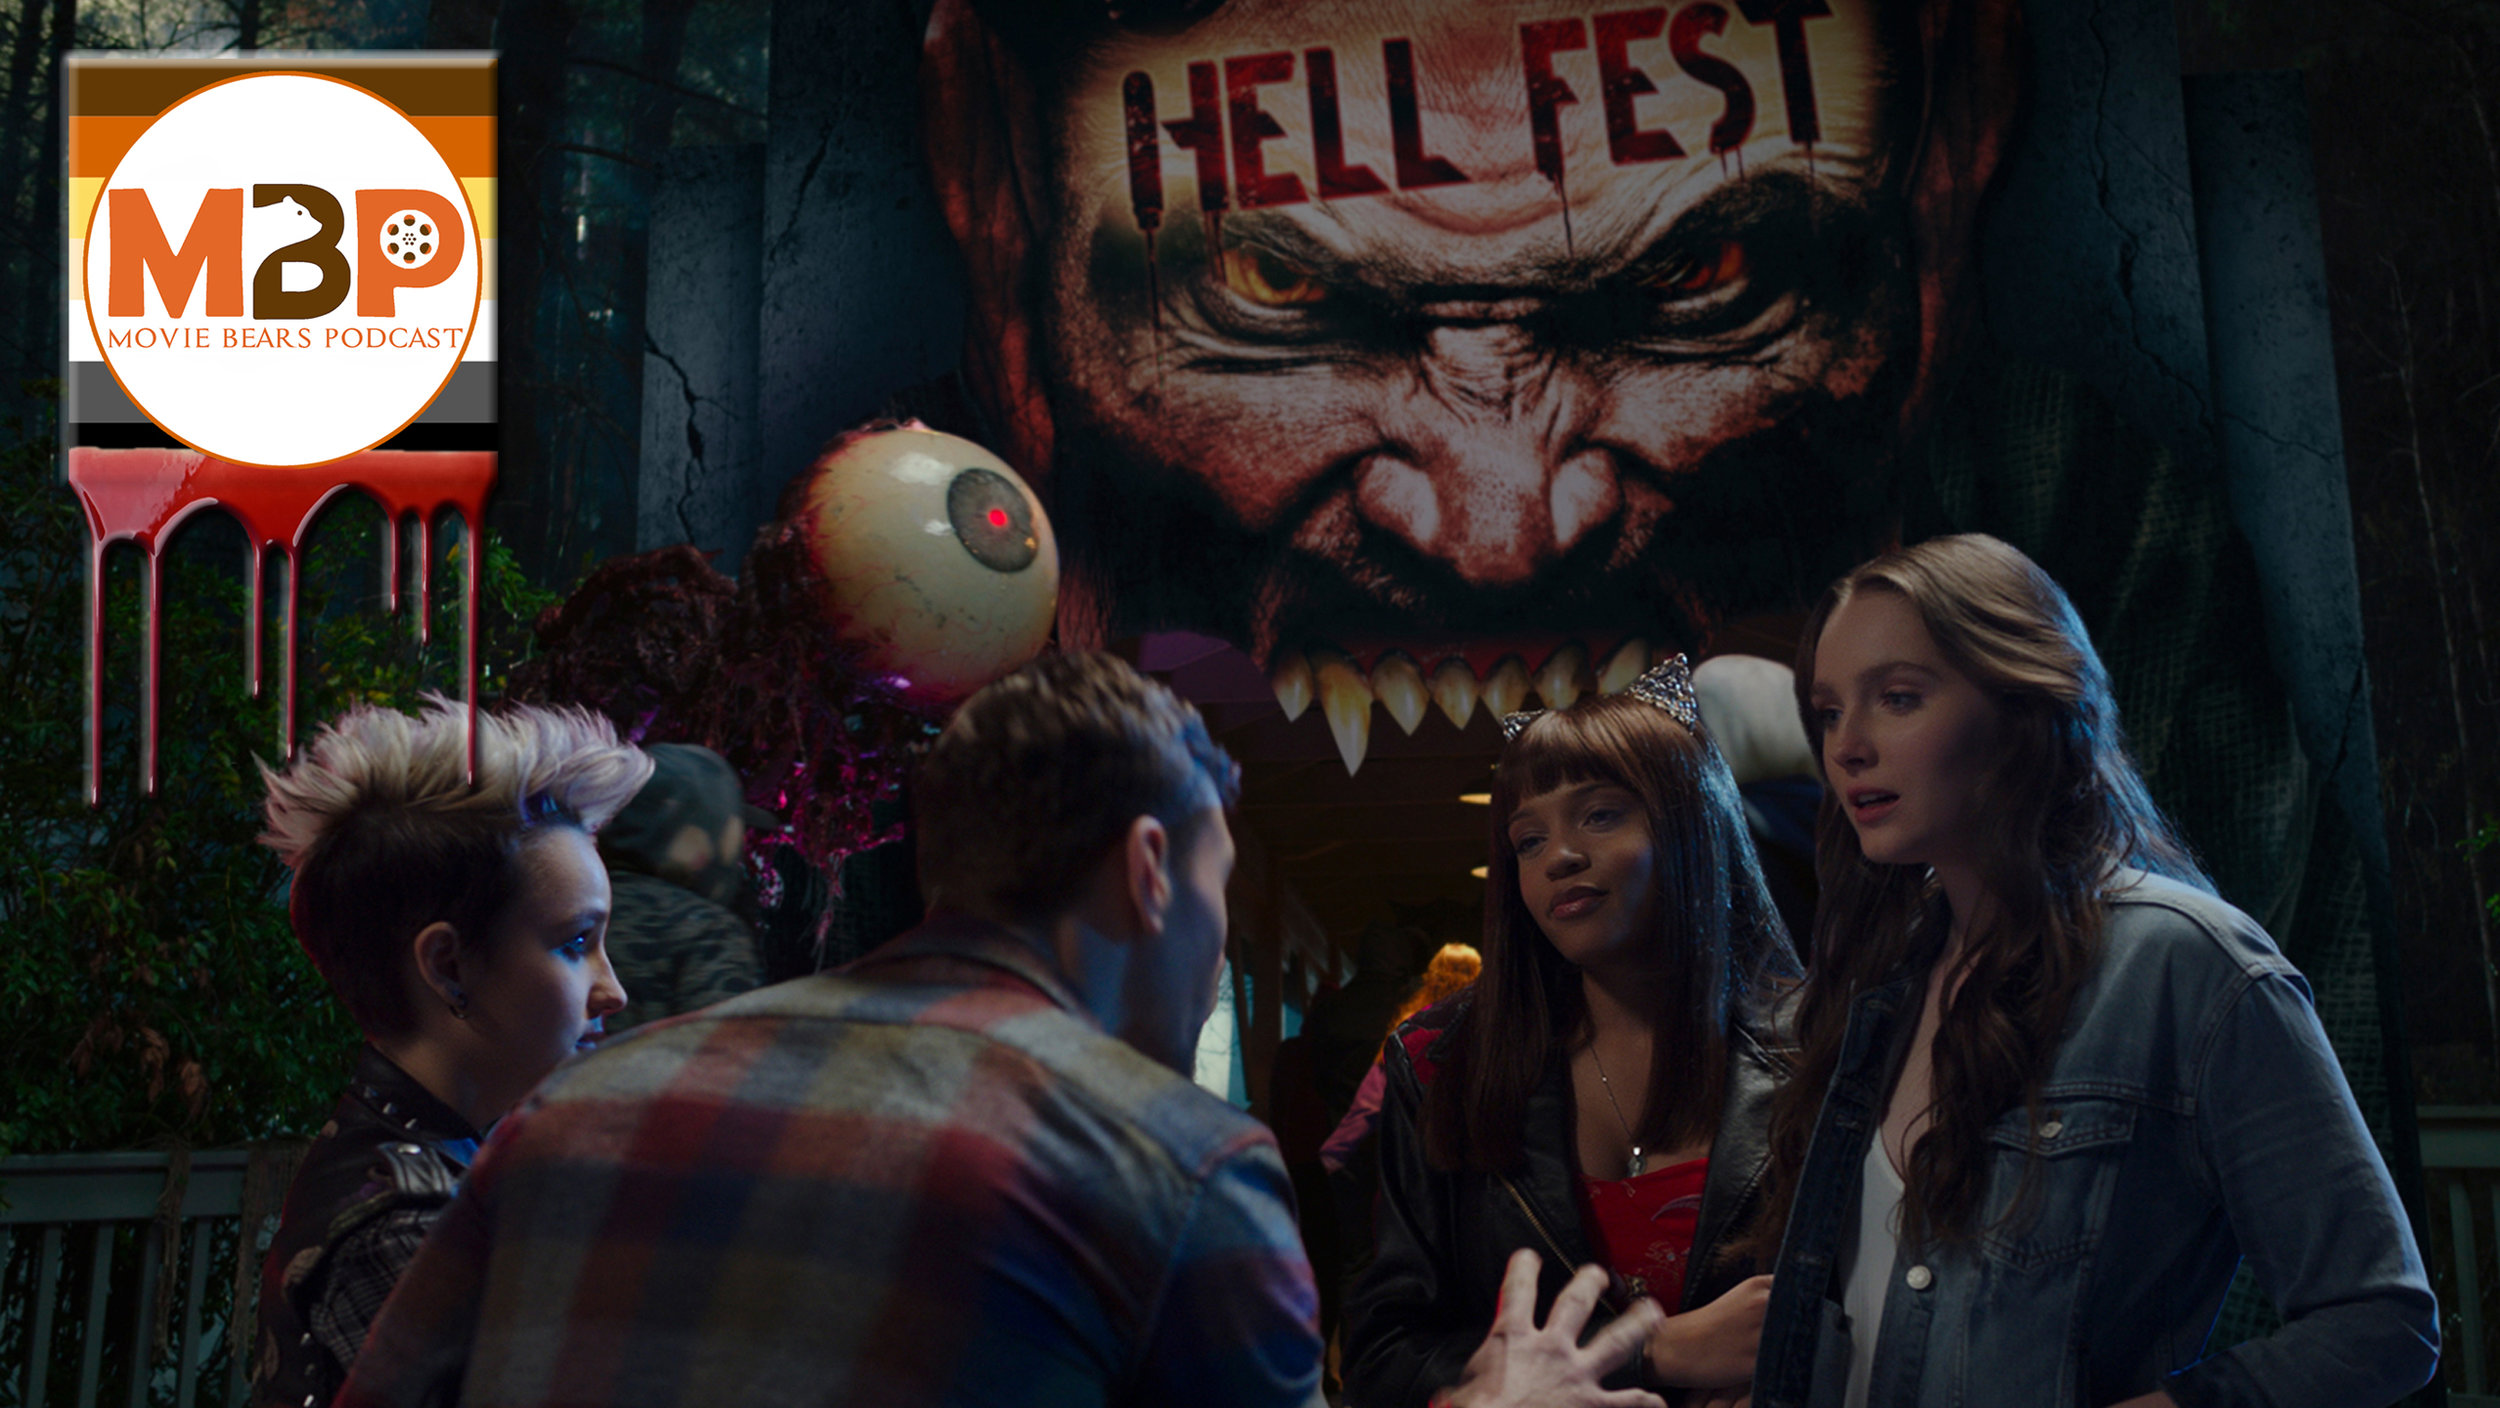 MBP e297 - 'Hell Fest' (10/1/18)    A group of friends finds themselves scared out of their minds as a real slasher stalks them through a horror-themed festival in 'Hell Fest.' Will this new horror flick chill you to the bone? Click through to hear our review!